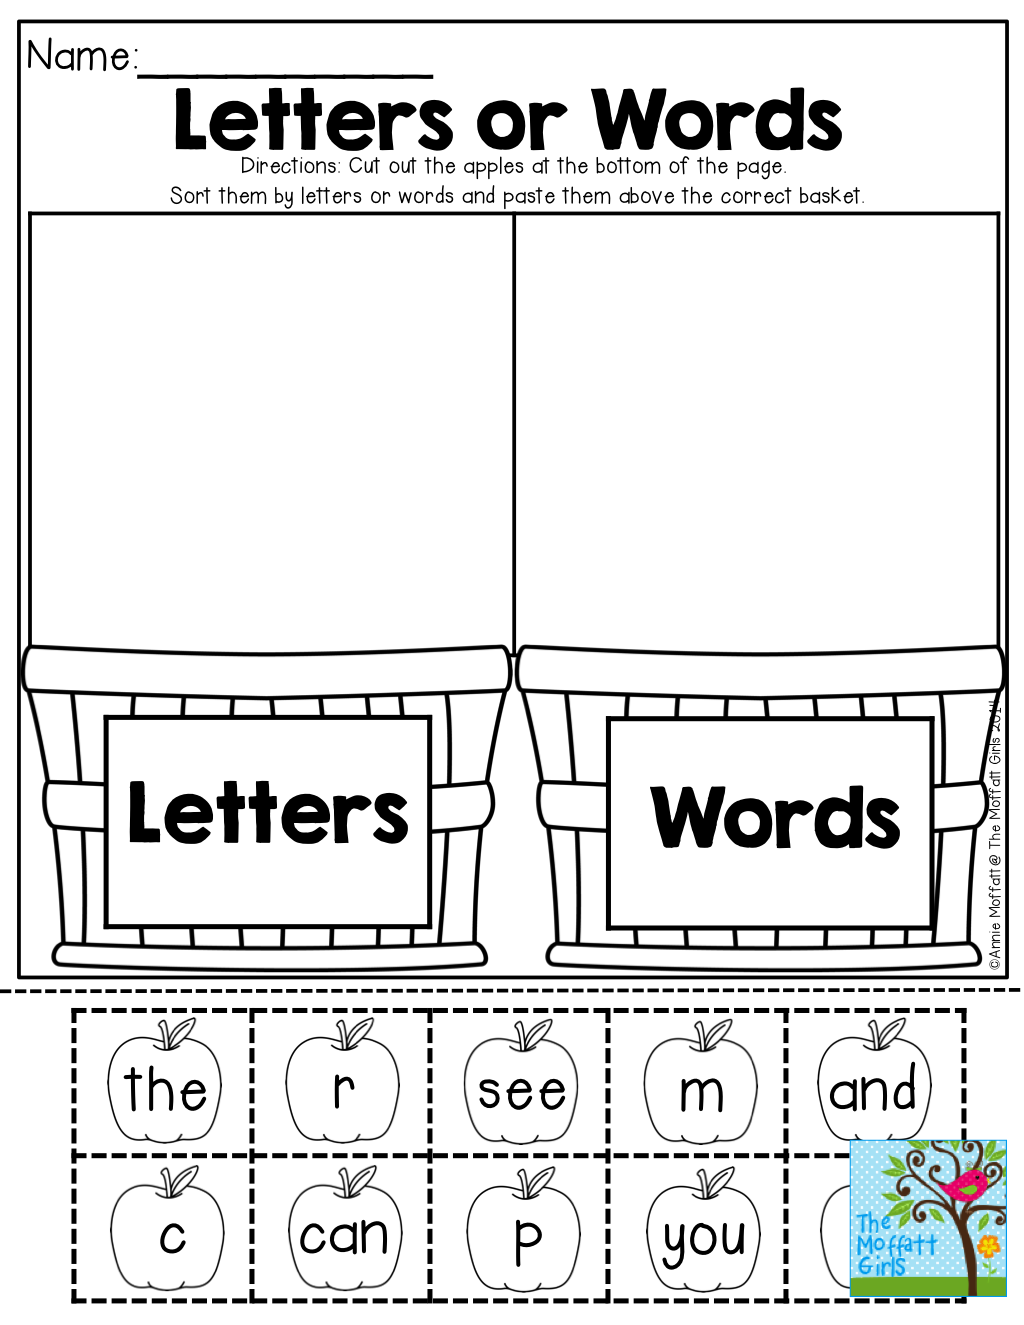 letter about school activities letters or word tons of back to school resources 17863 | 57bcad80e9726da93d64c413478f1362